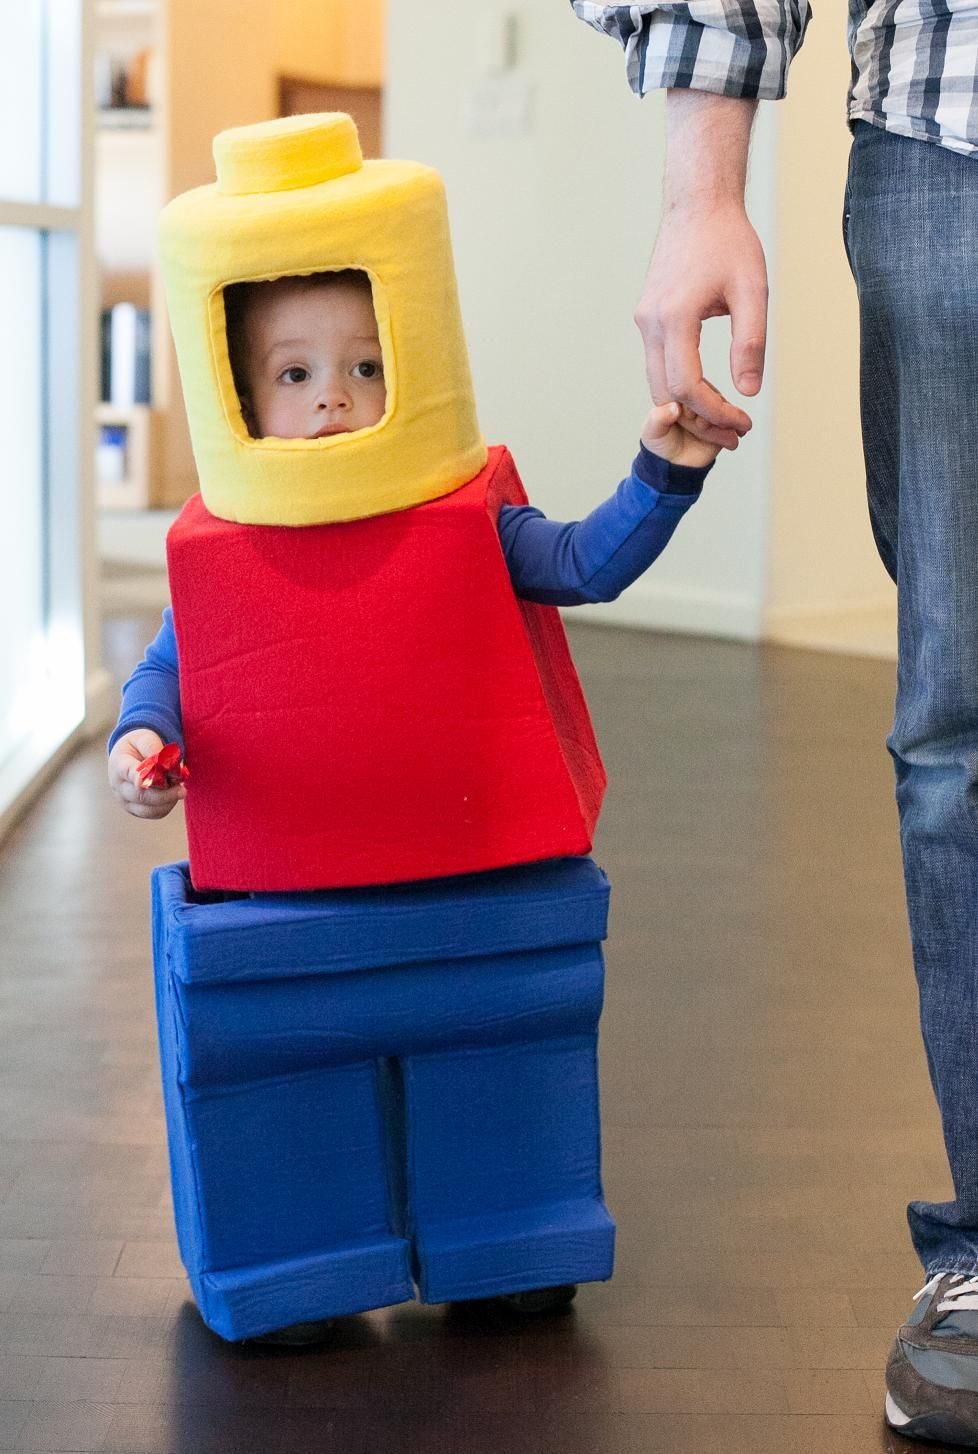 Lego Minifig Costume & Lego Minifig Costume | lego costume | Pinterest | Lego Costumes and ...